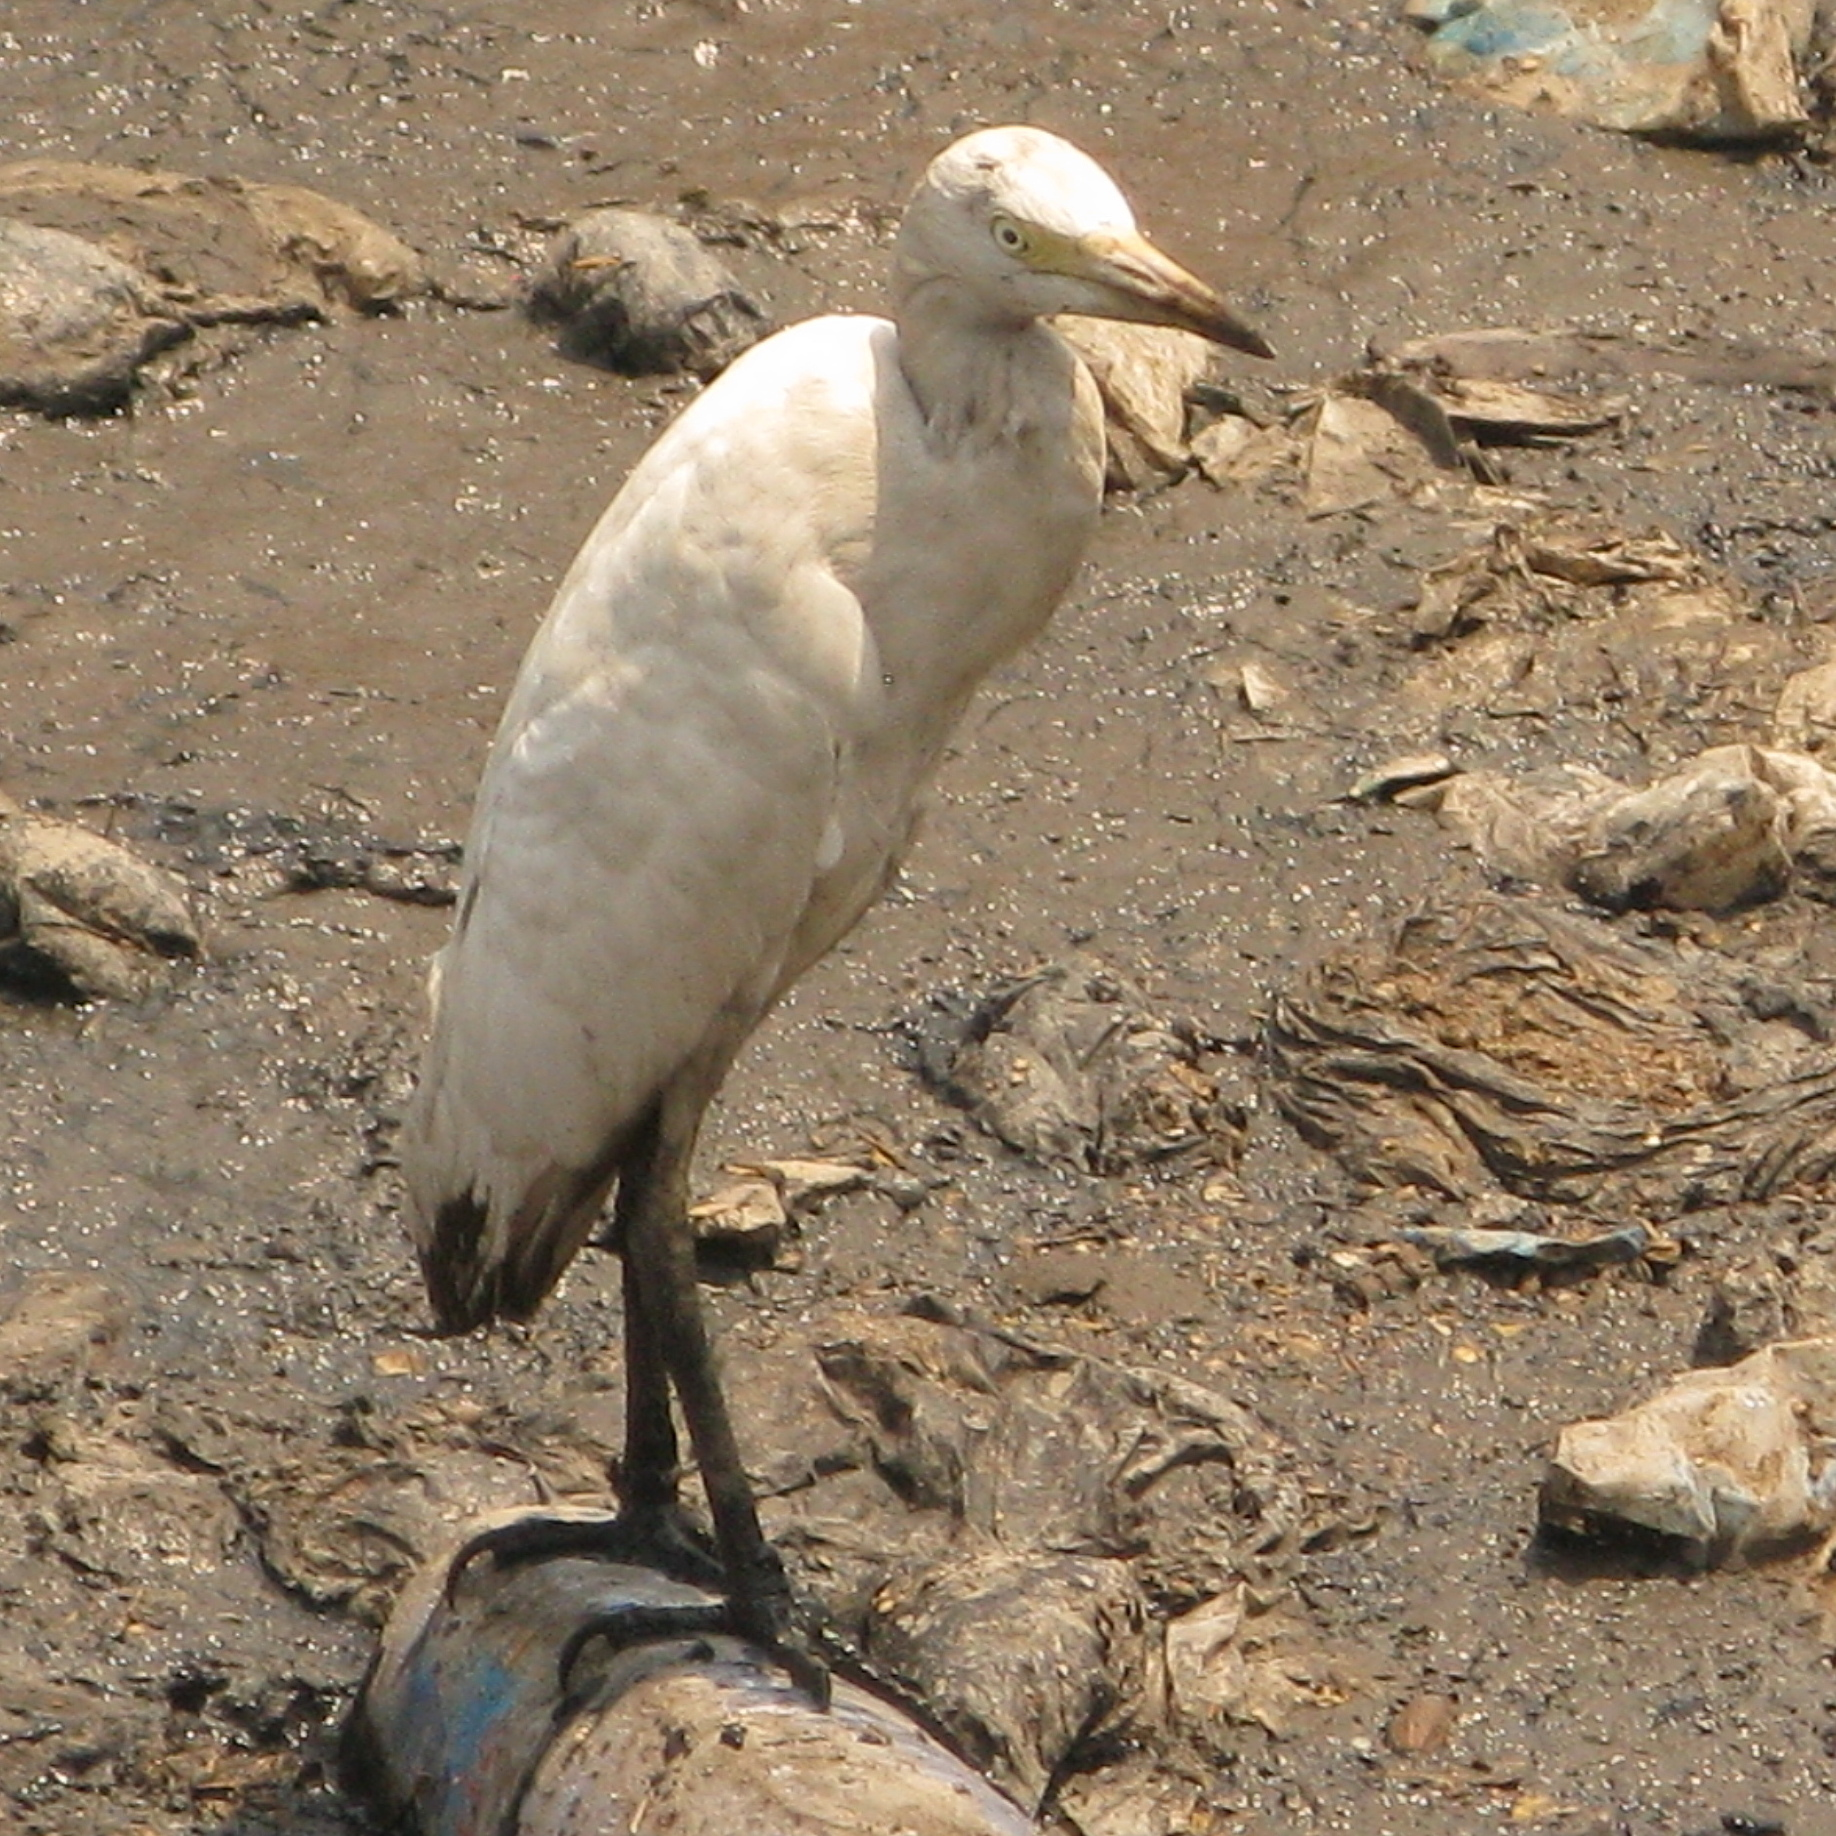 The first murder victim of Quartey's Children of the Street is found in Agbogbloshie's putrid canal, where white egrets eke out an existence picking at garbage for food.